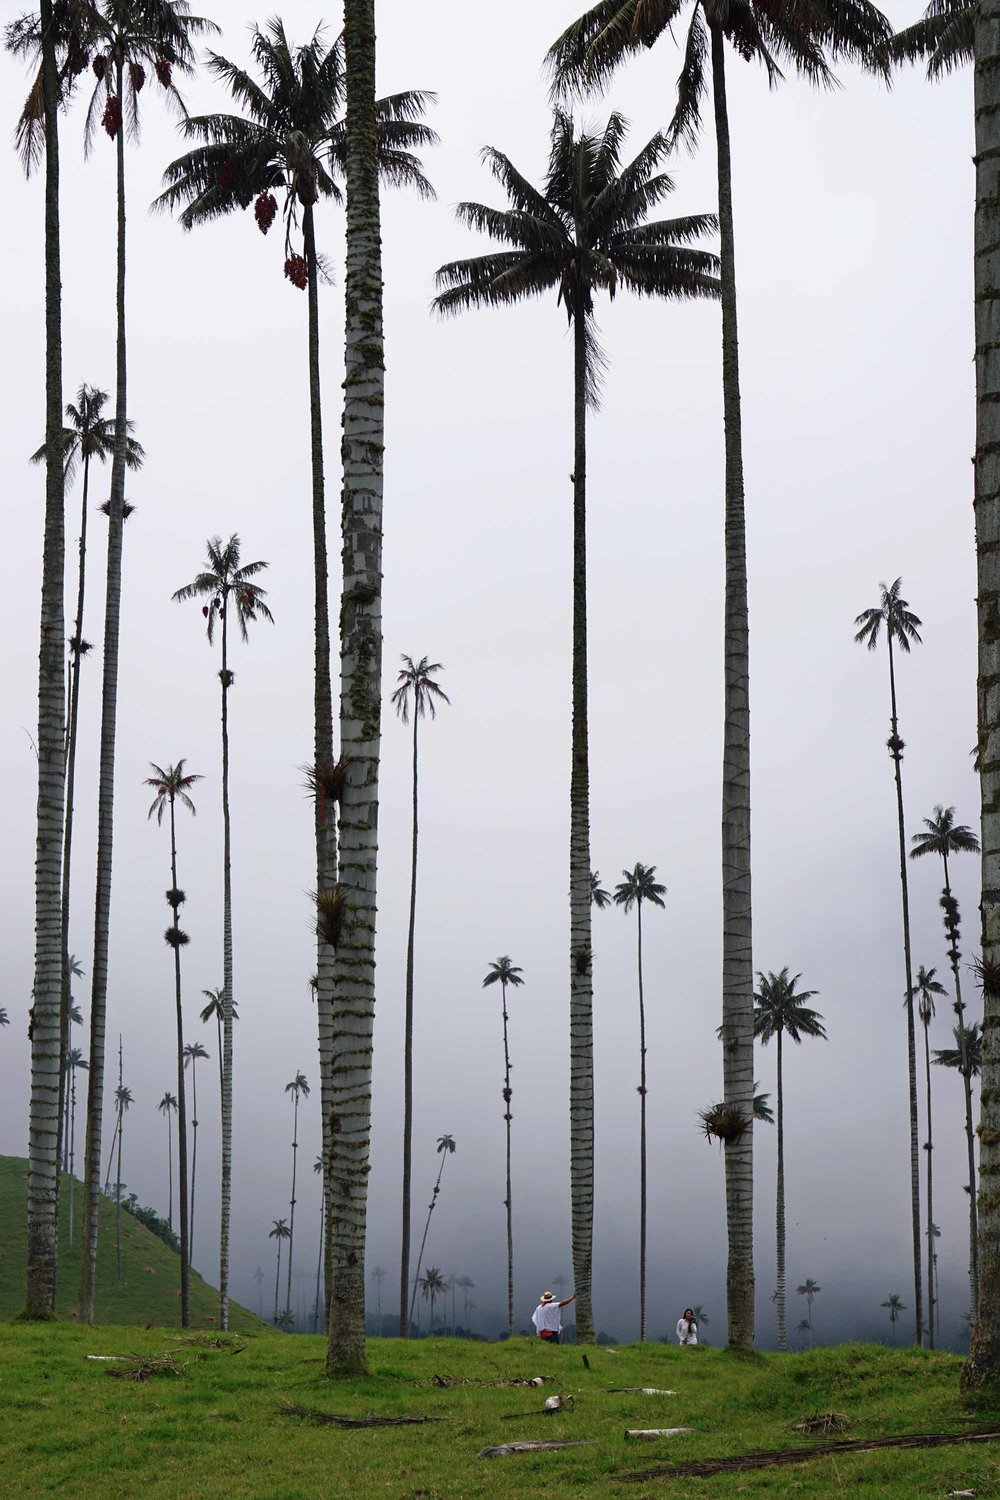 Wax Palms | World's tallest palm tree in Valle de Cocora, Salento, Colombia